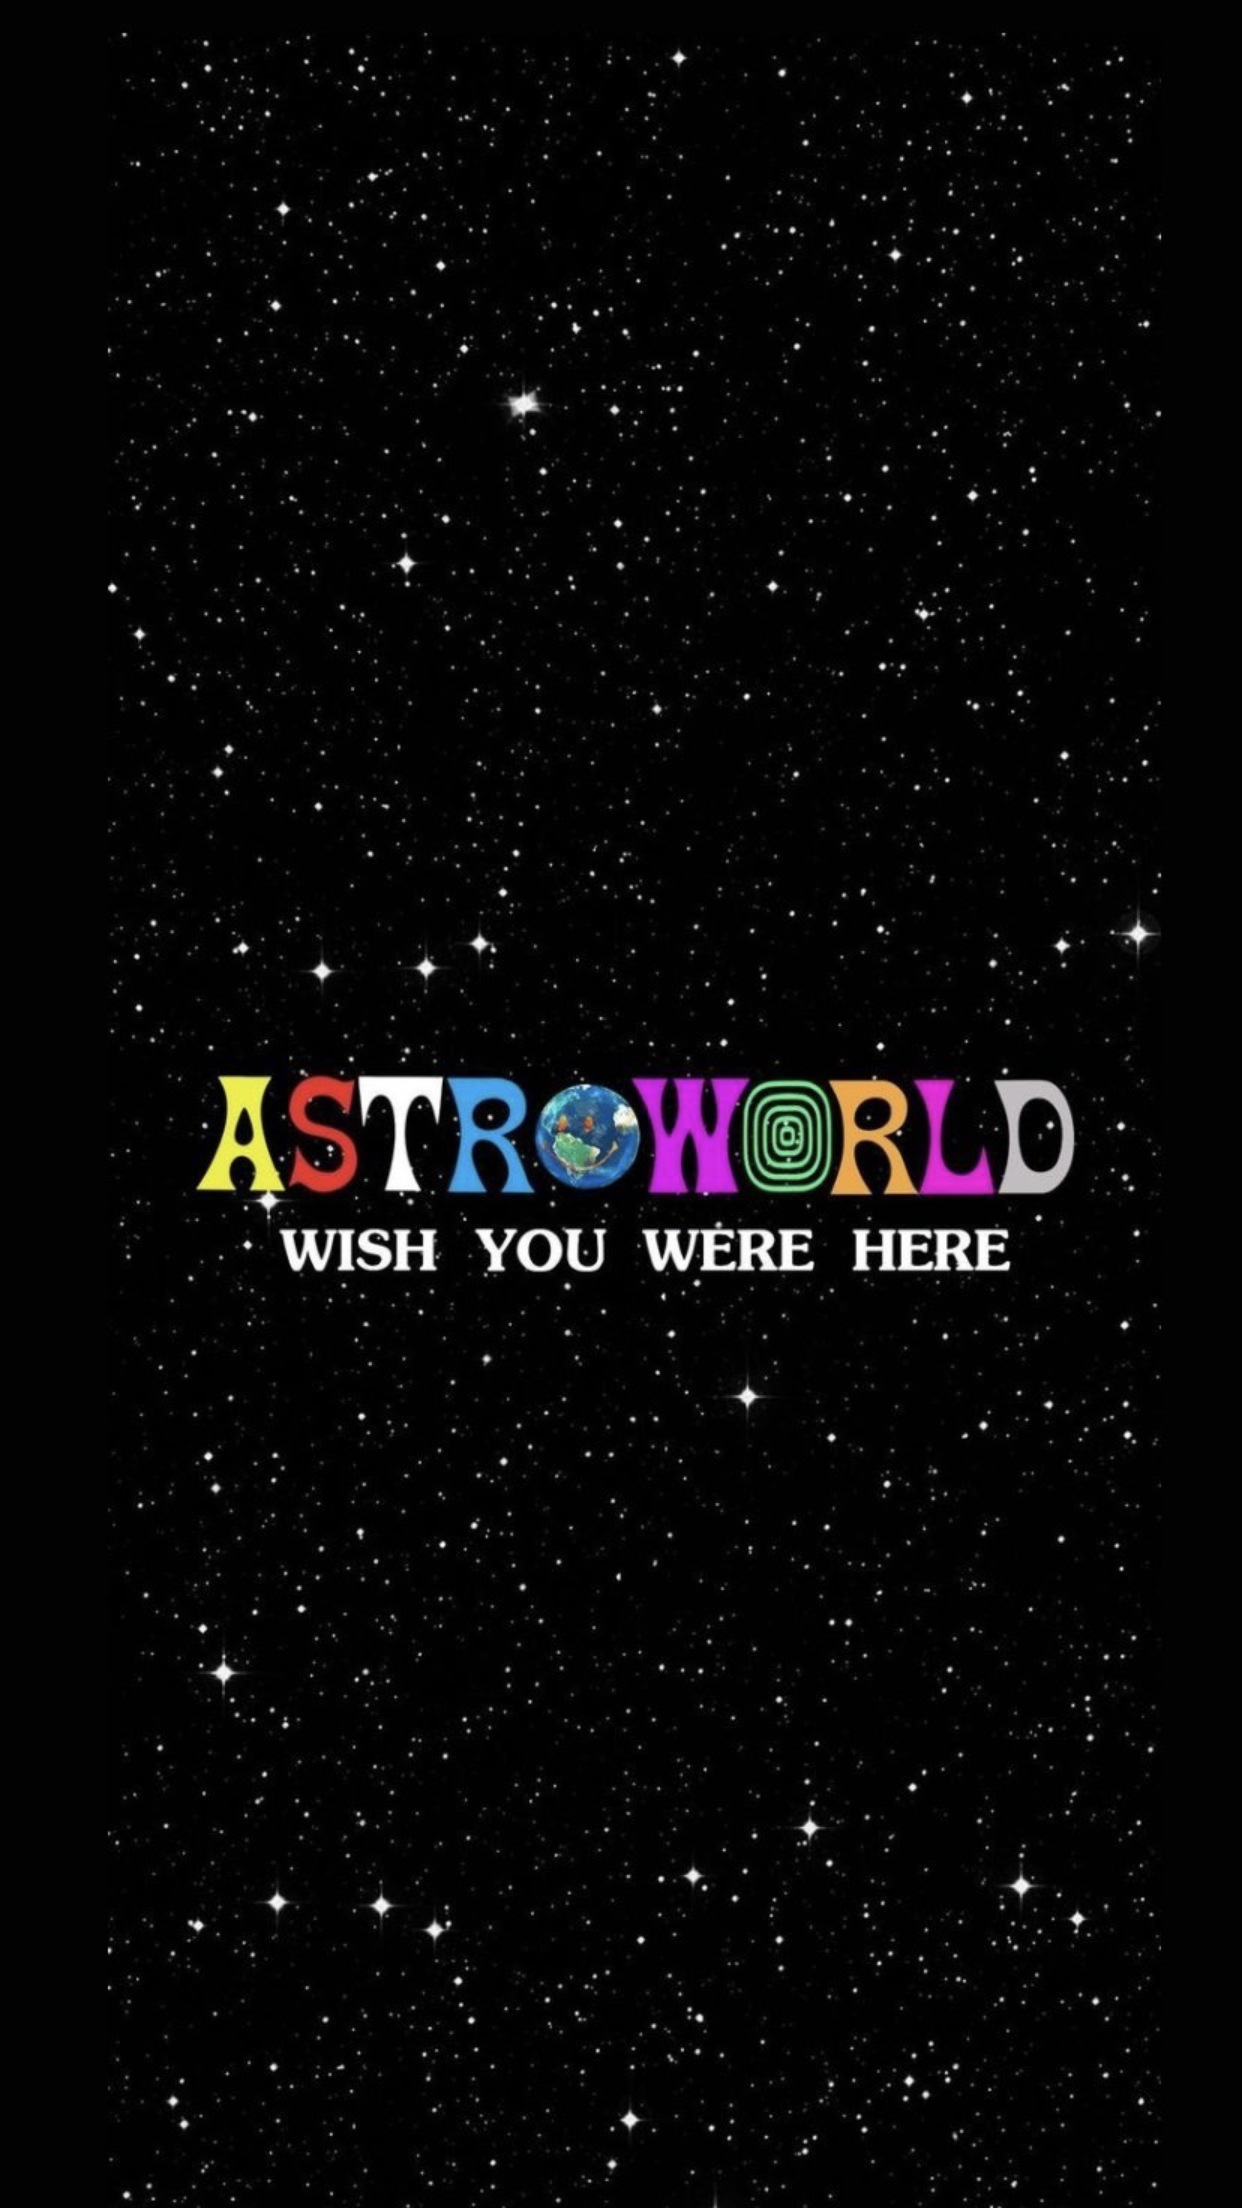 Wallpaper Astroworld Art Collage Wall Travis Scott Wallpapers Picture Collage Wall